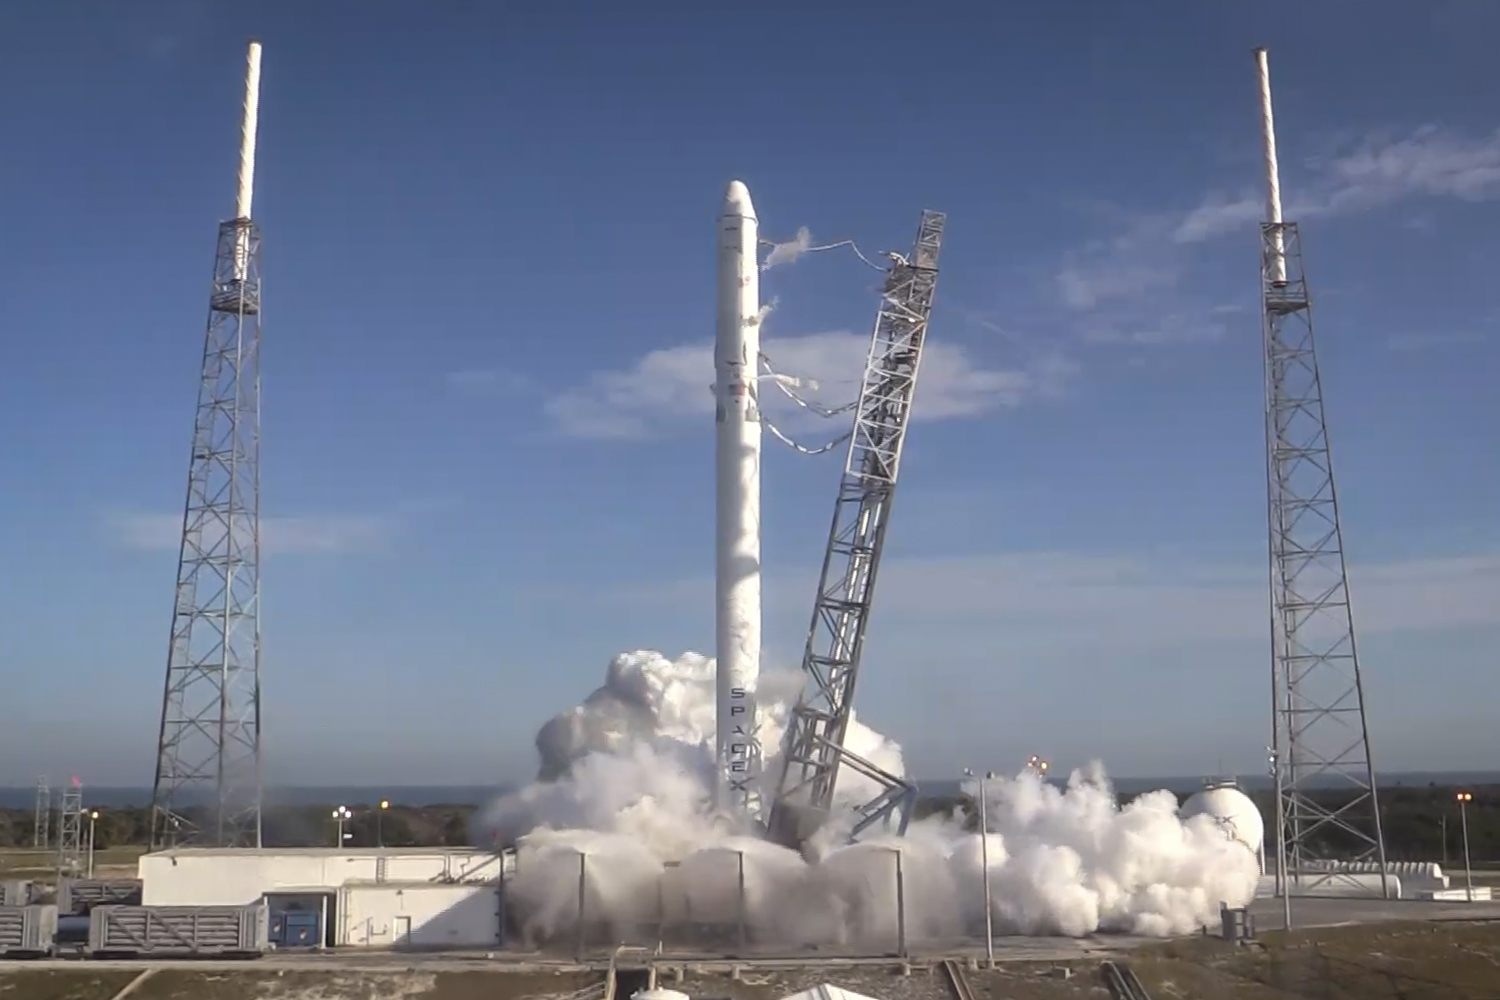 successful engine test enables spacex falcon 9 soar to space station in jan 2015